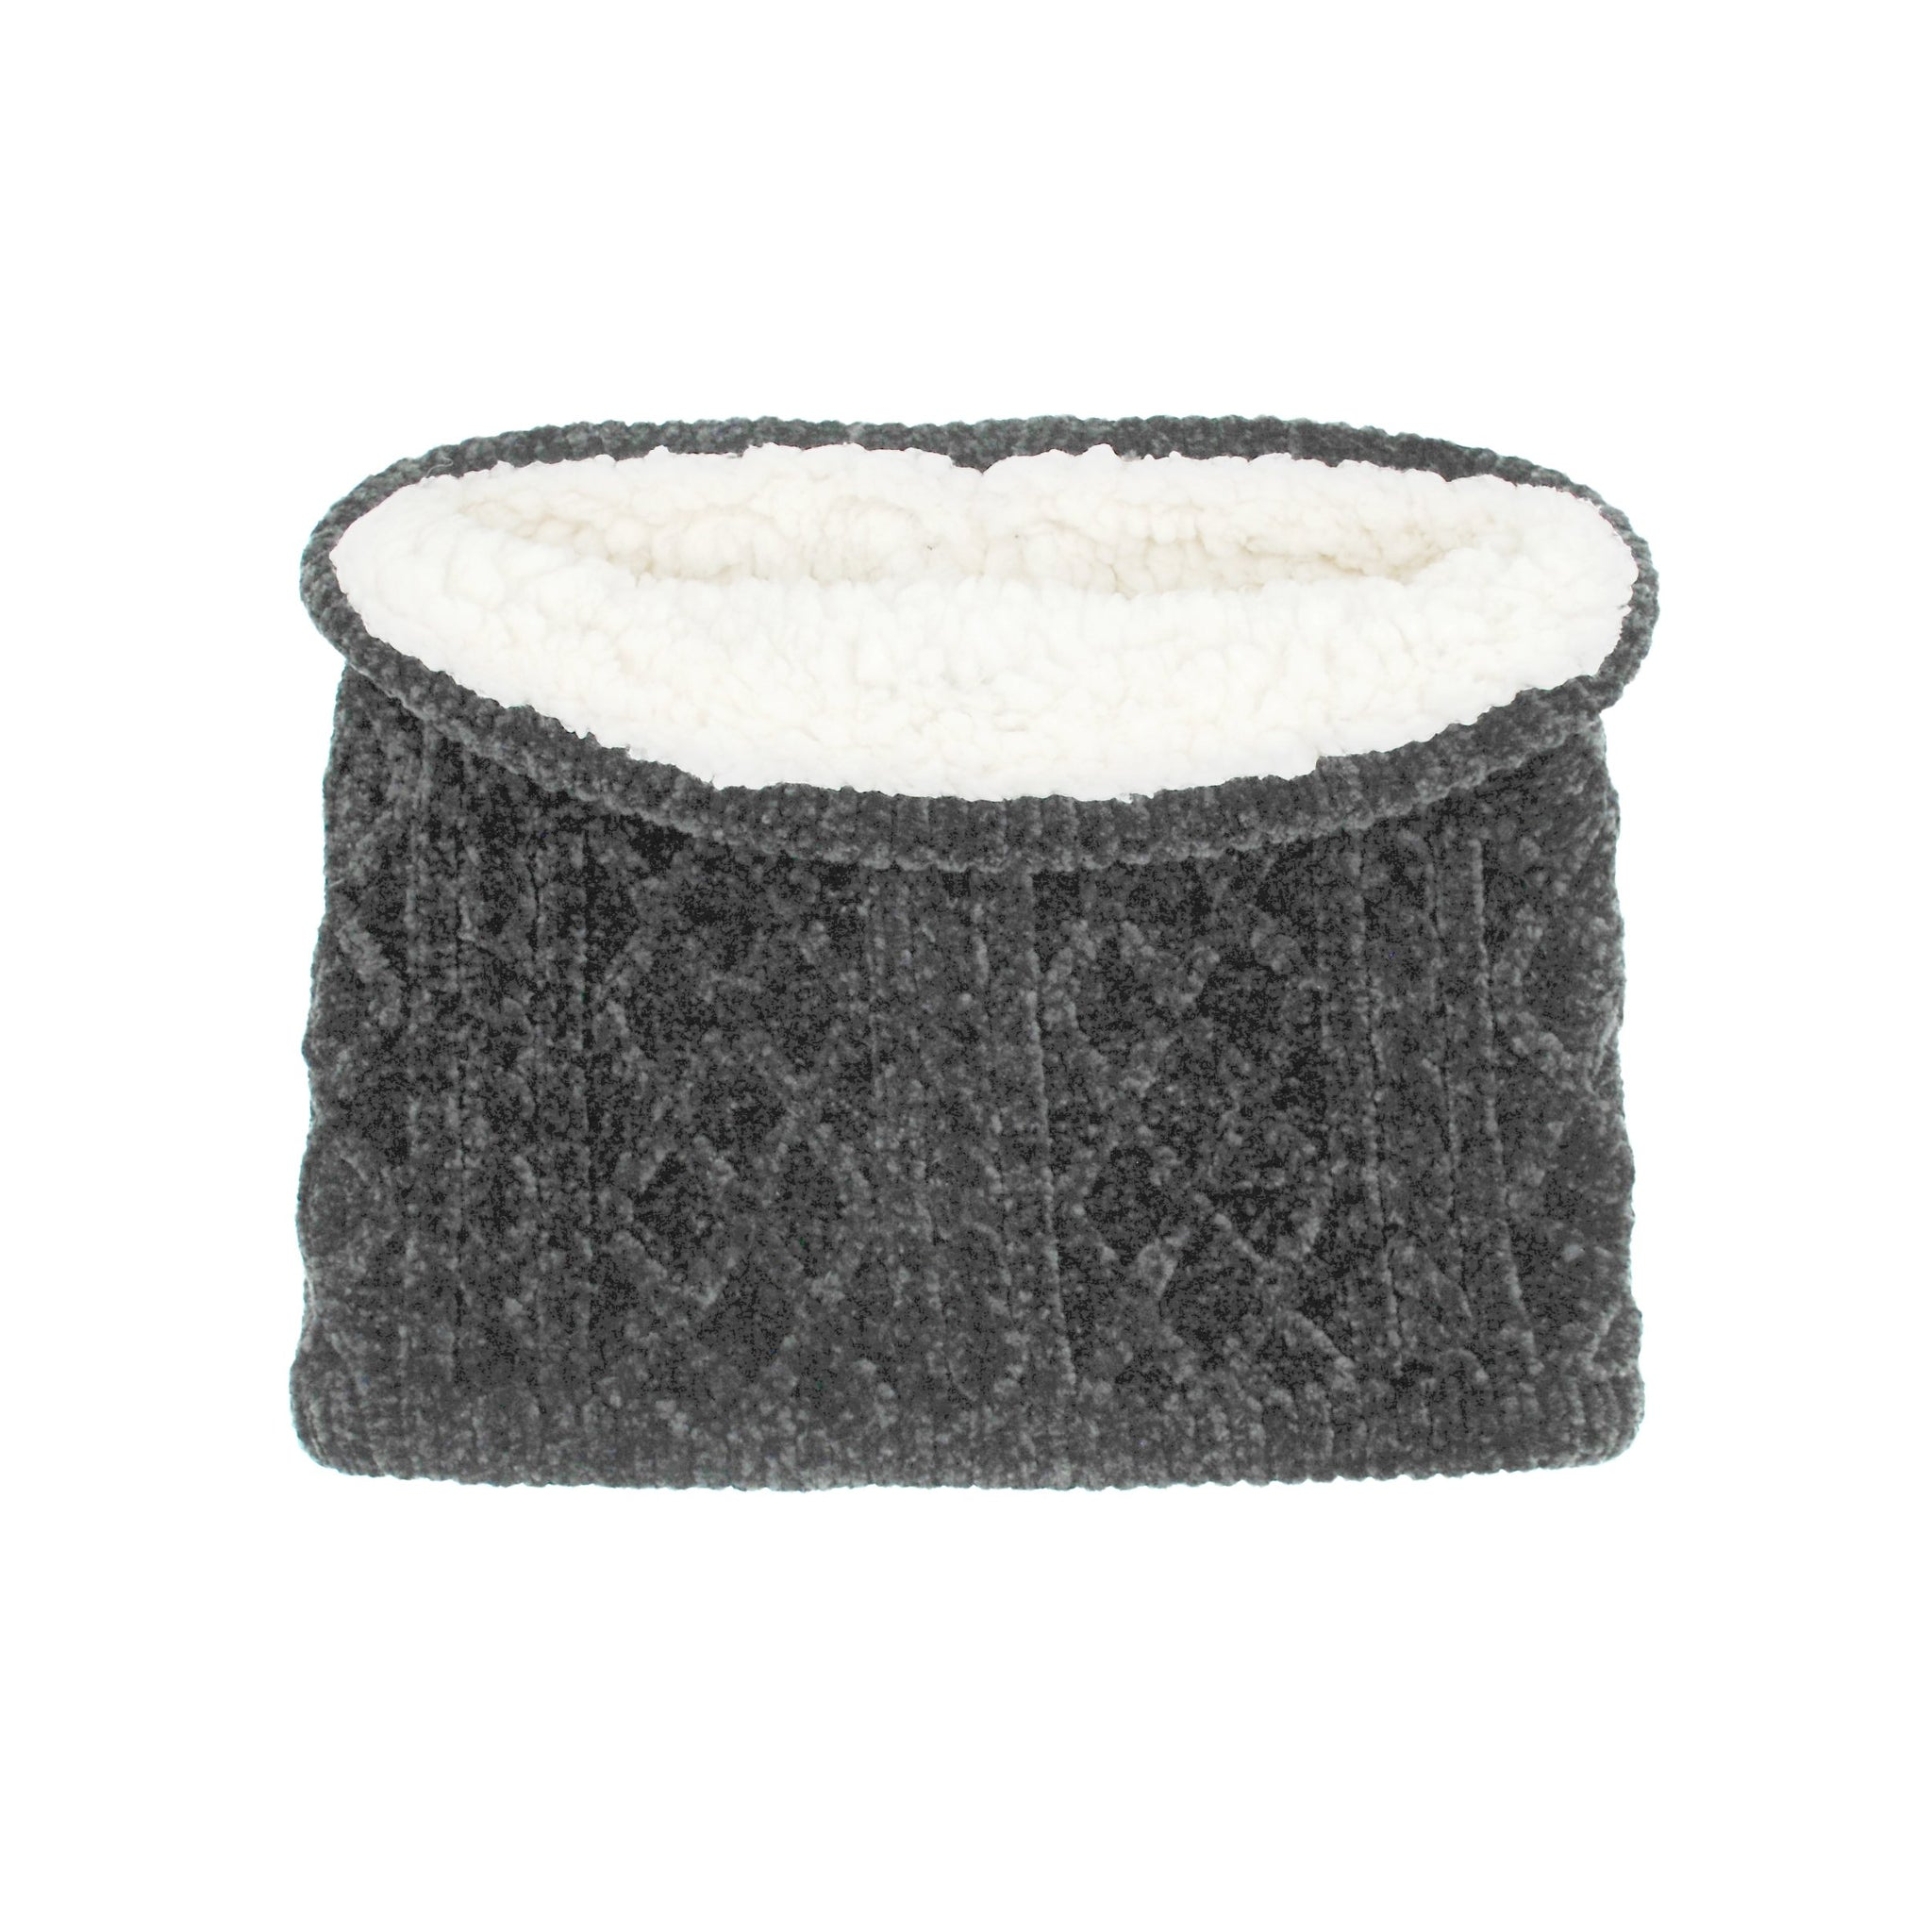 Chenille Knit Snood Gaiter Neck Warmer | Grey